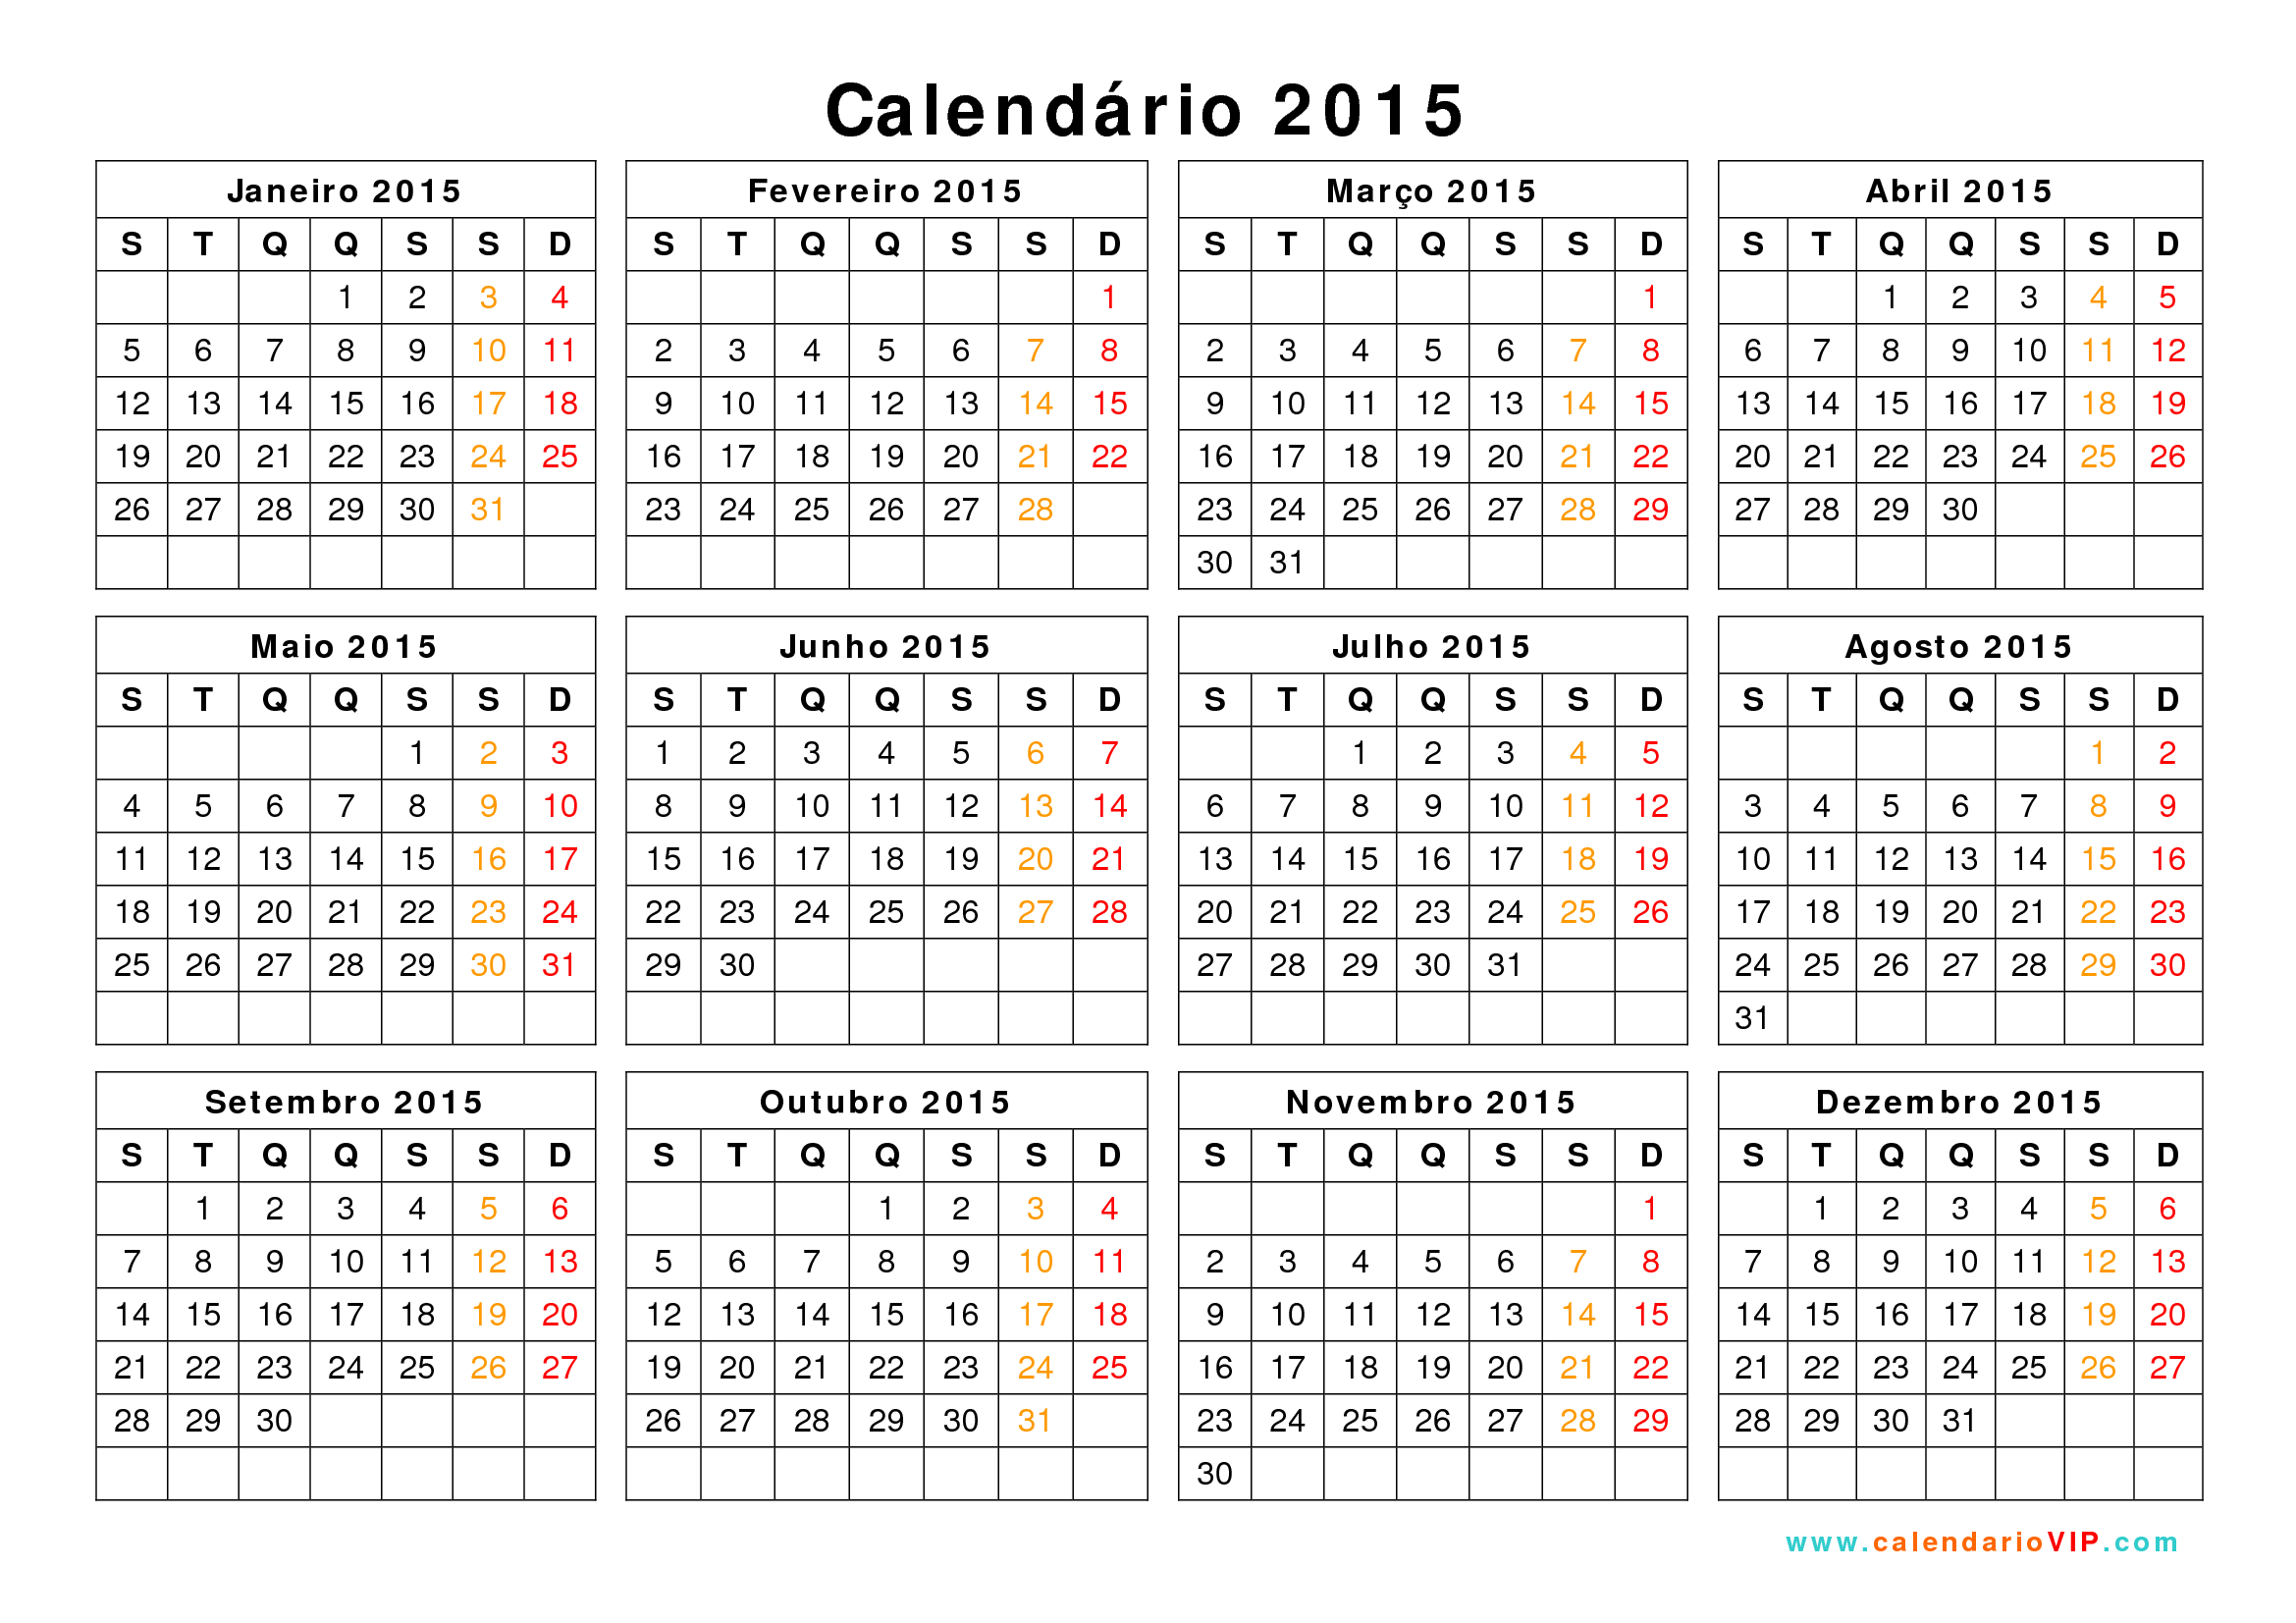 Calendario Febrero 2016 Para Imprimir Related Keywords - Calendario ...